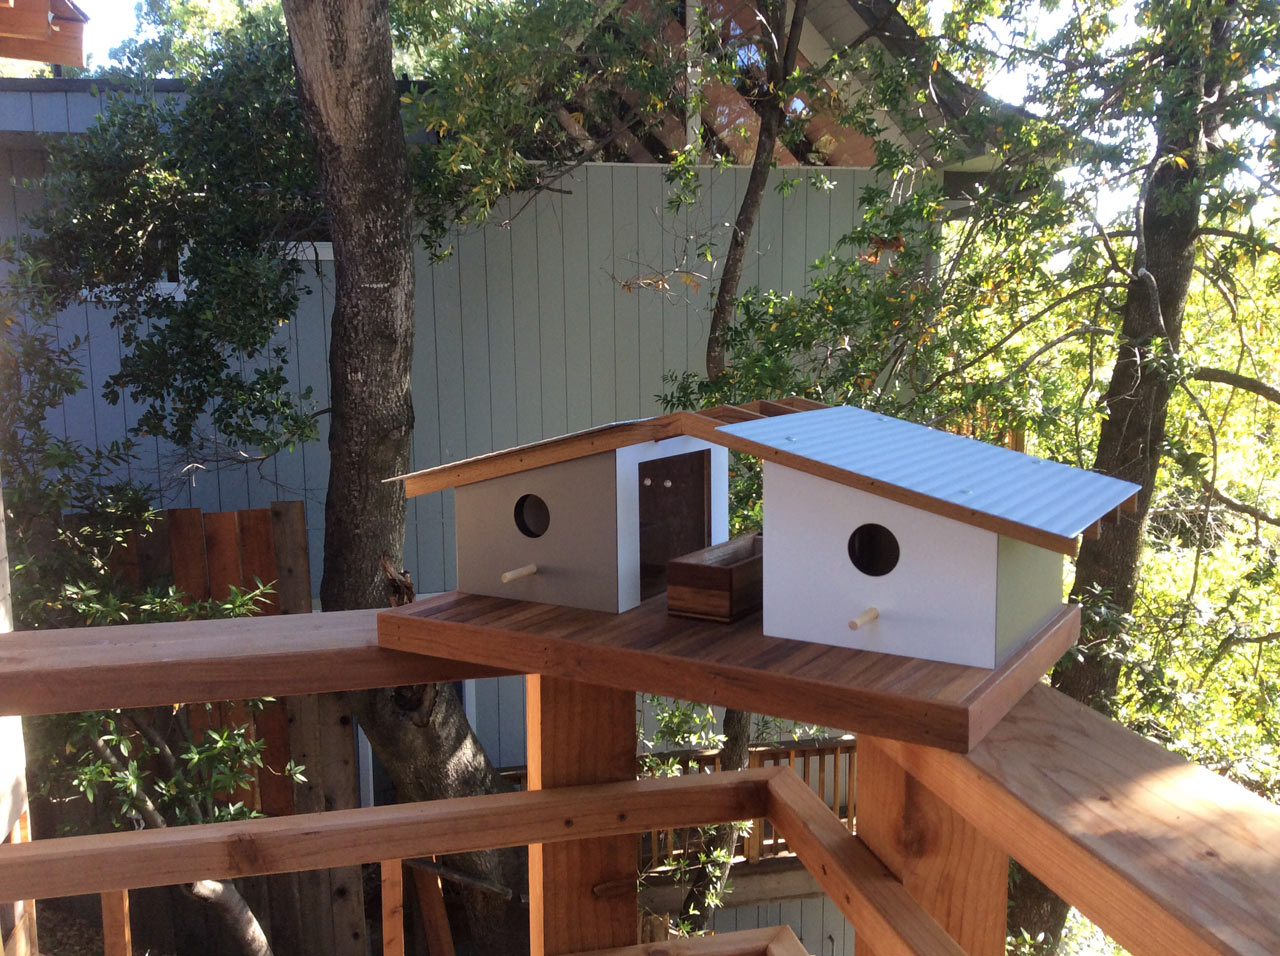 birdhouses that are cooler than your own house - design milk